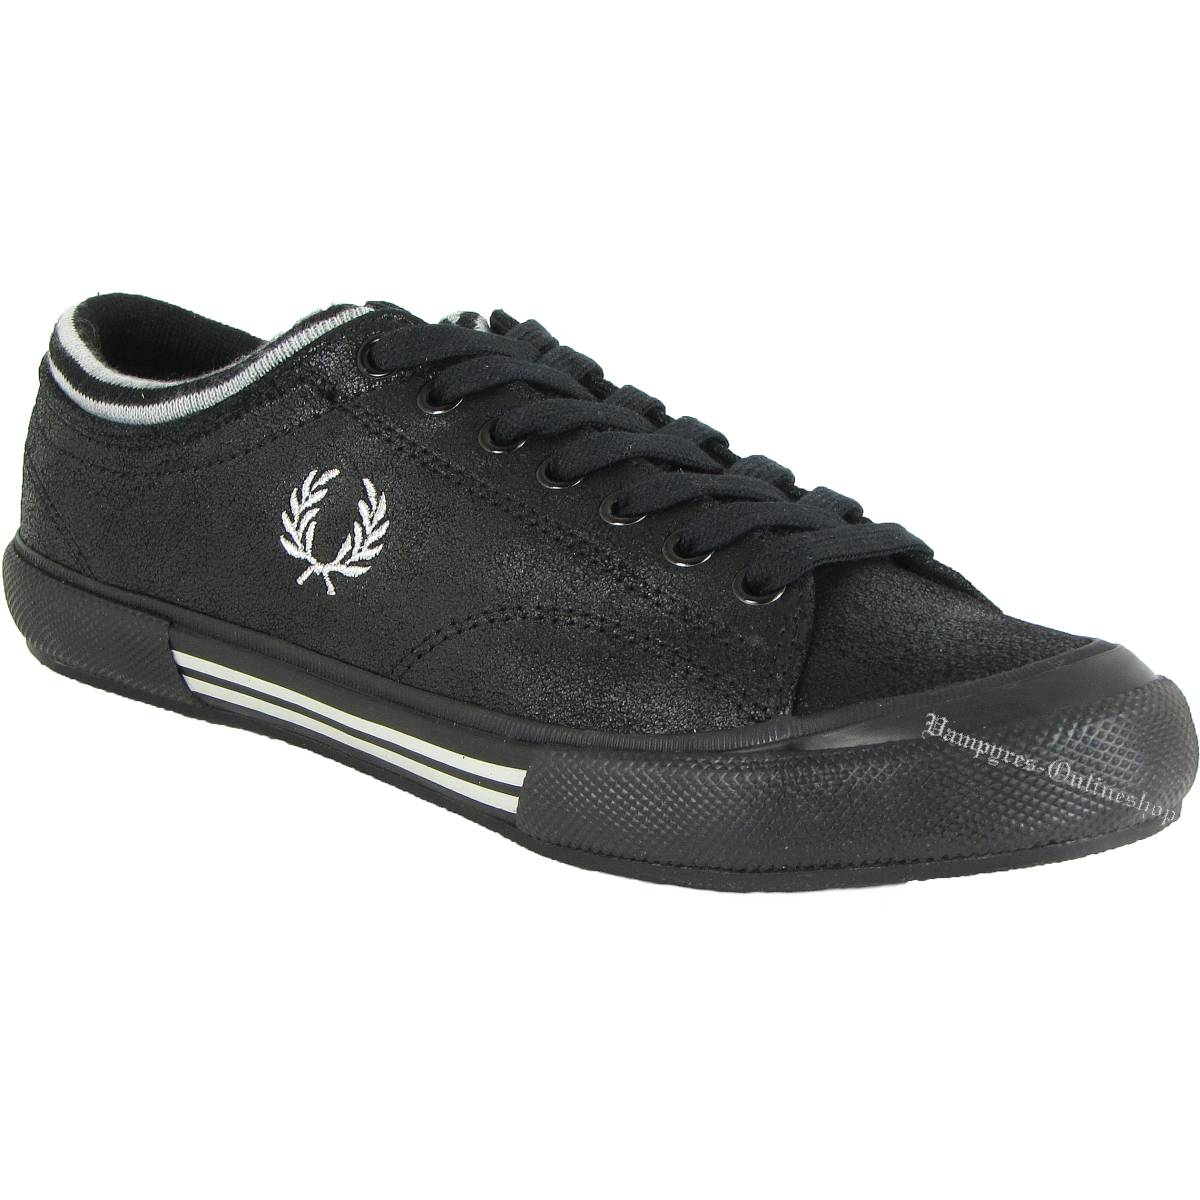 Fred Perry Black Leather Sneaker B2022102 Leder Schwarz